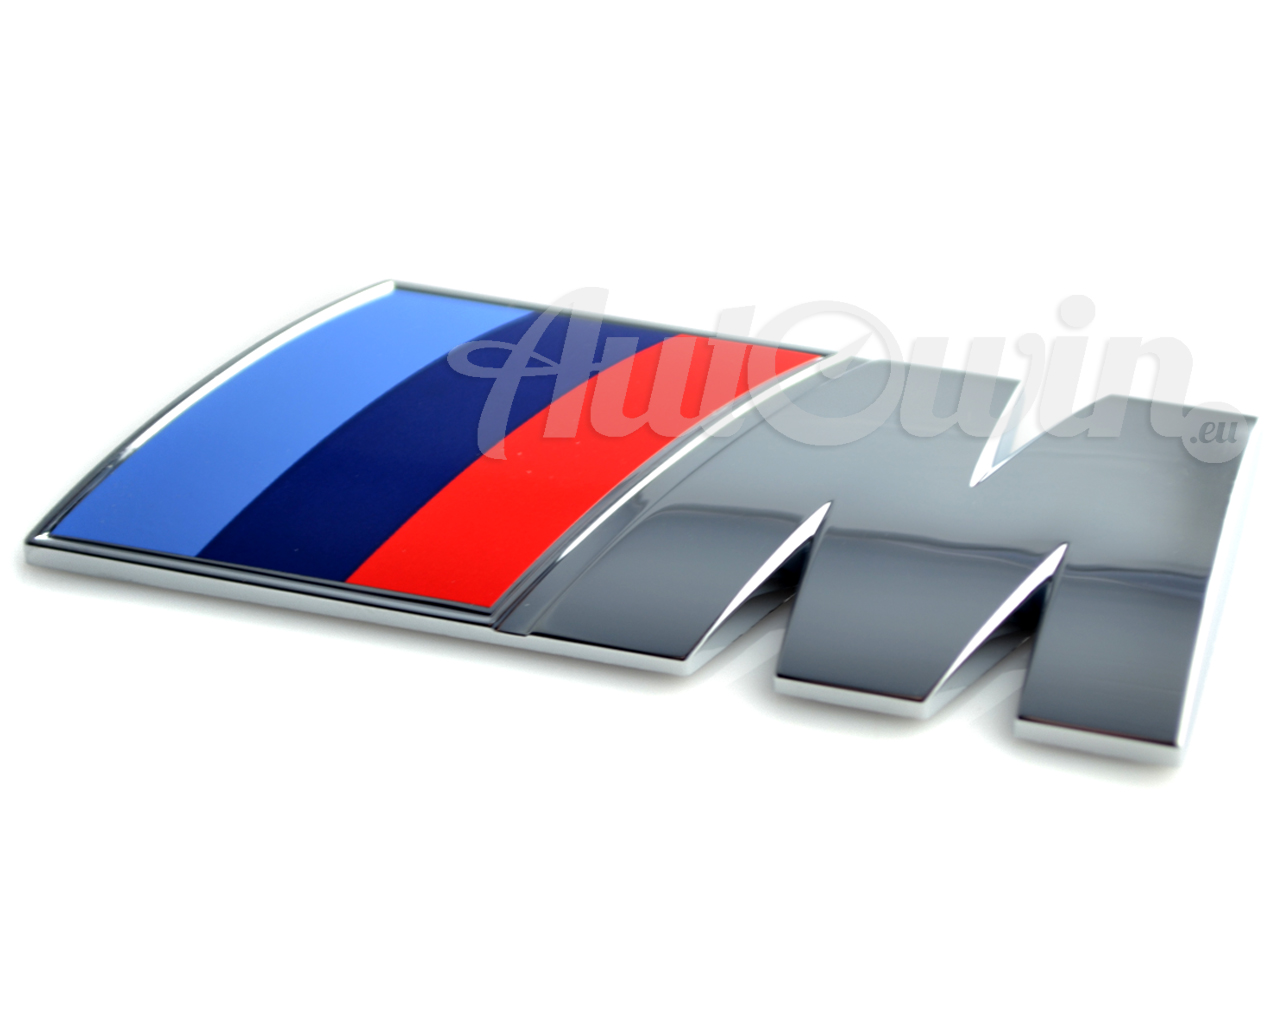 Bmw 1 series e81e82e88e87 m genuine rear trunk badge emblem bmw genuine m rear trunk emblem is a decorative element that brings an elegant sporty feel to the exterior of your bmw buycottarizona Gallery